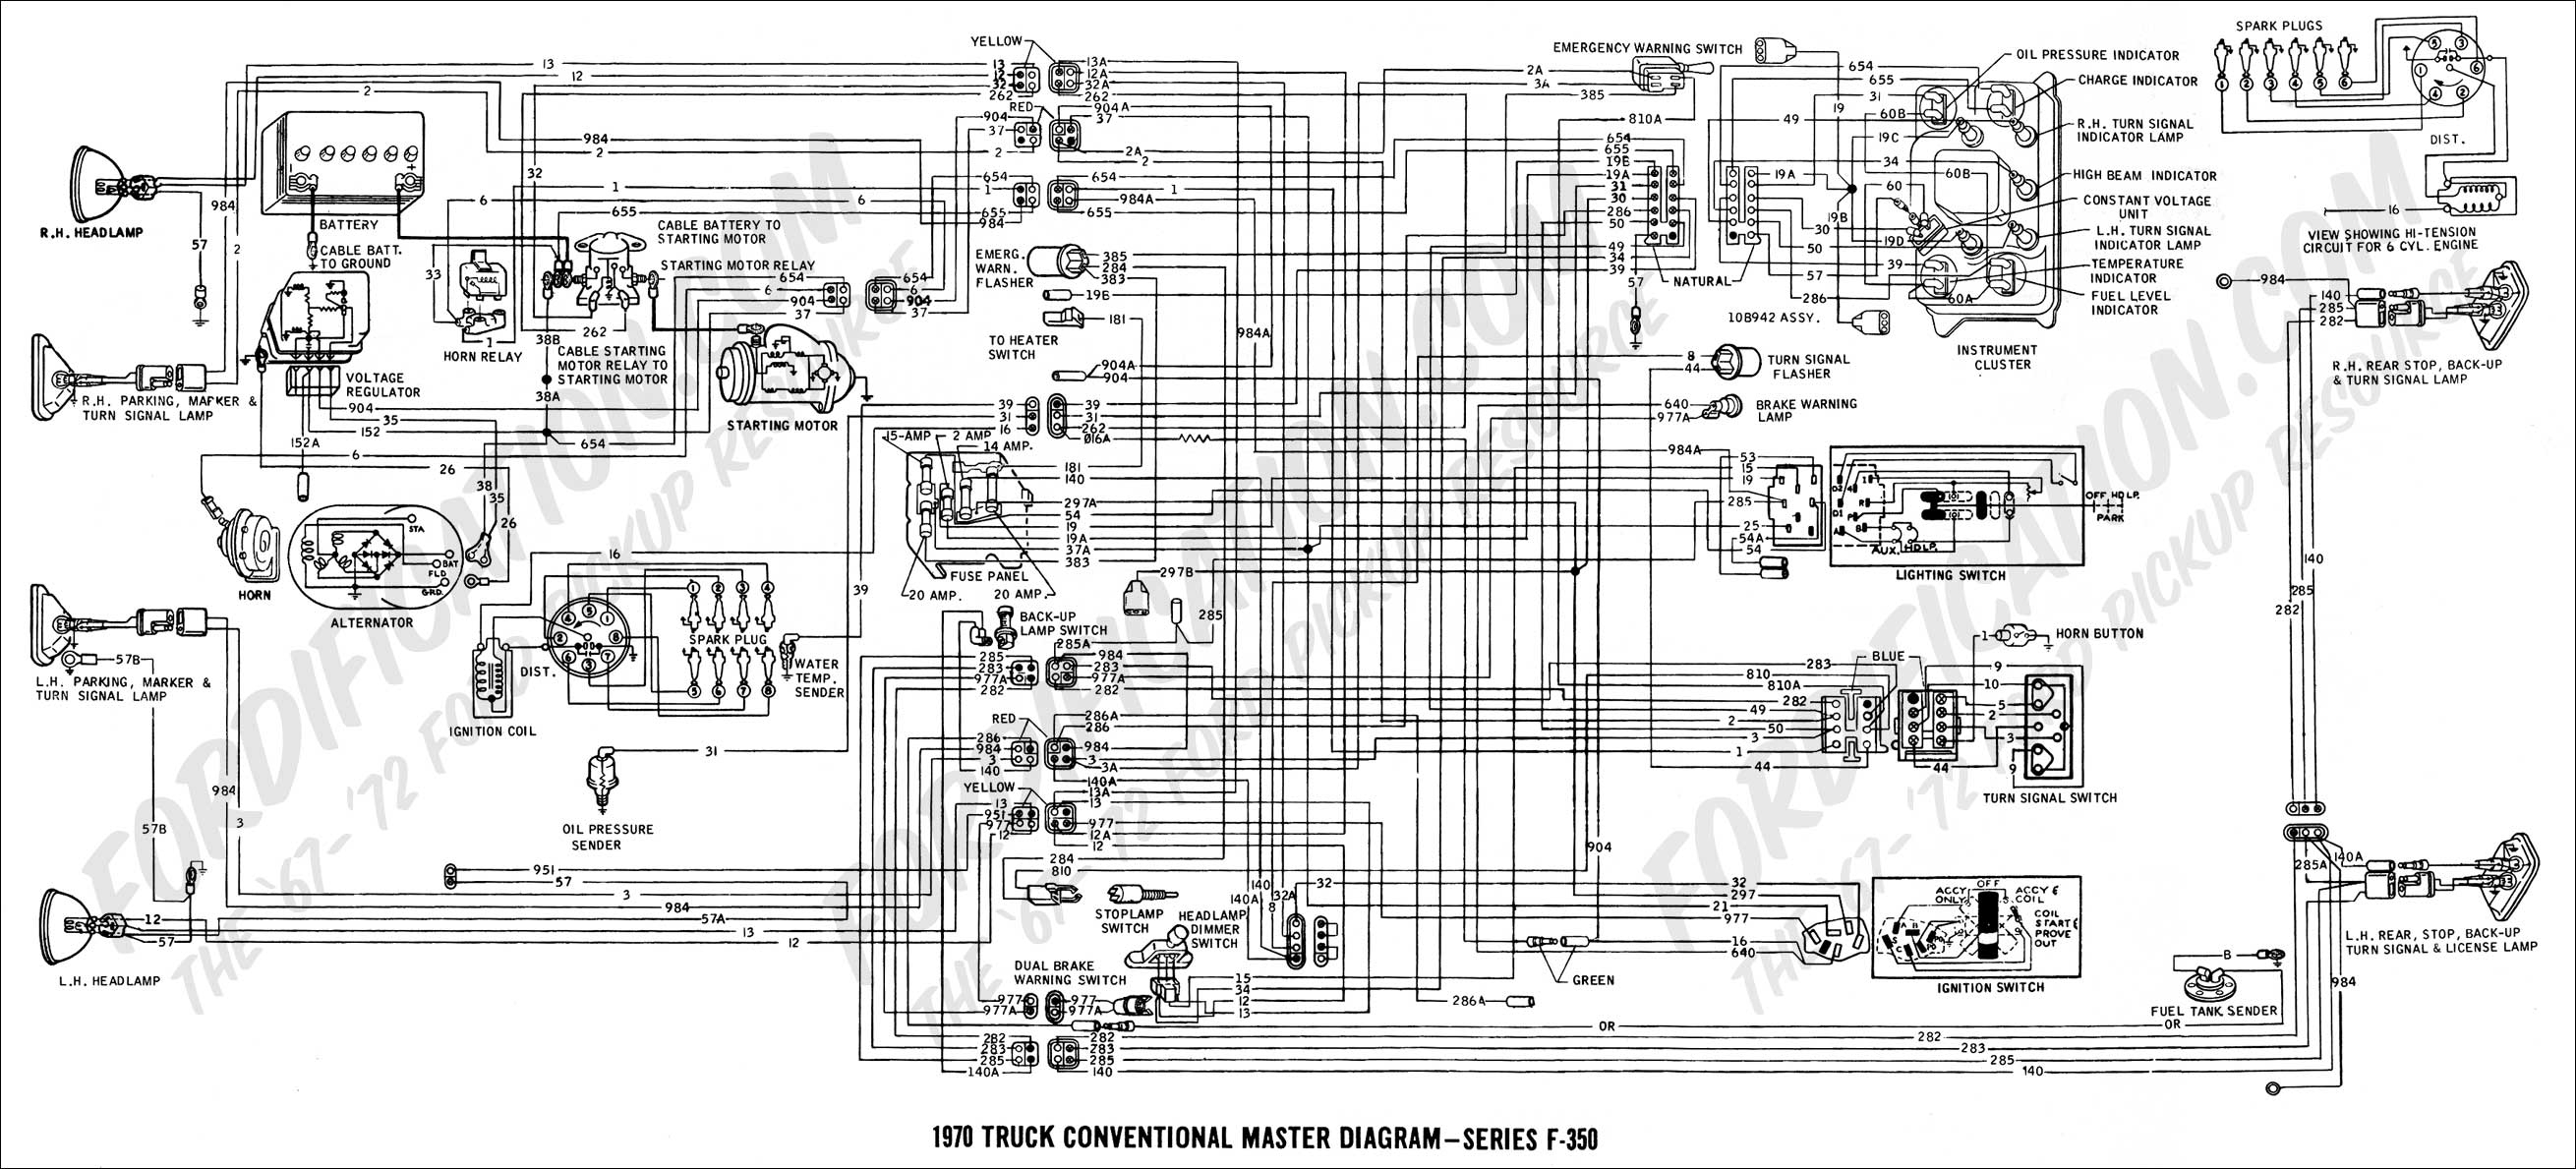 2008 Ford Super Duty Wiring Diagram - Today Wiring Diagram - 2008 Ford F350 Trailer Wiring Diagram